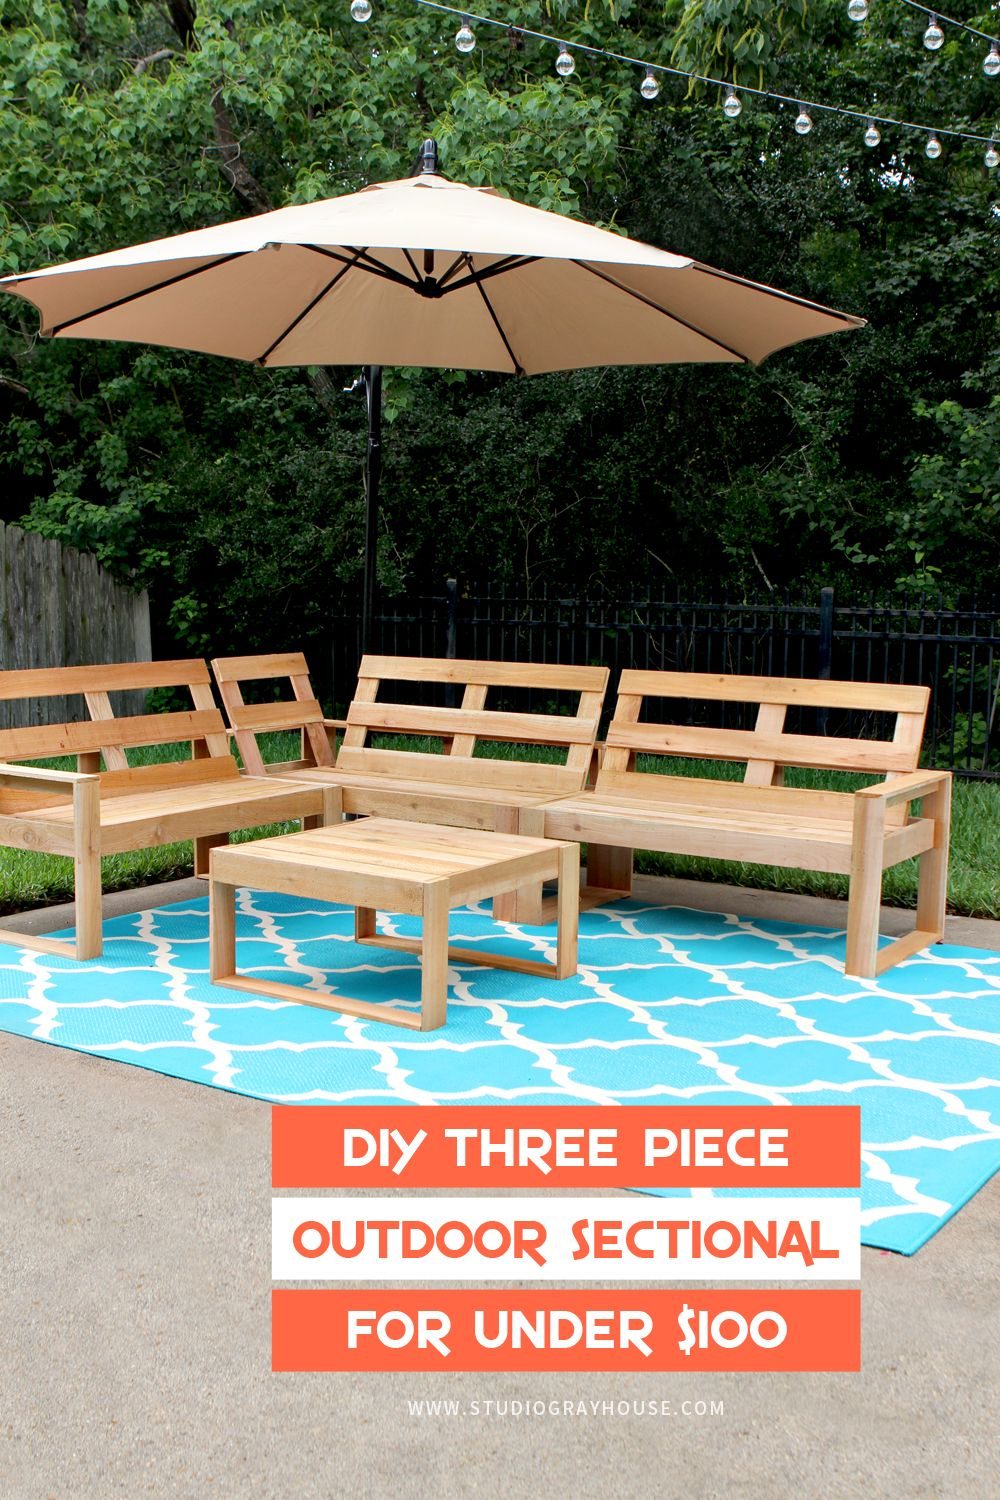 DIY Outdoor Sectional for Under $100 | Cedar fence pickets ...